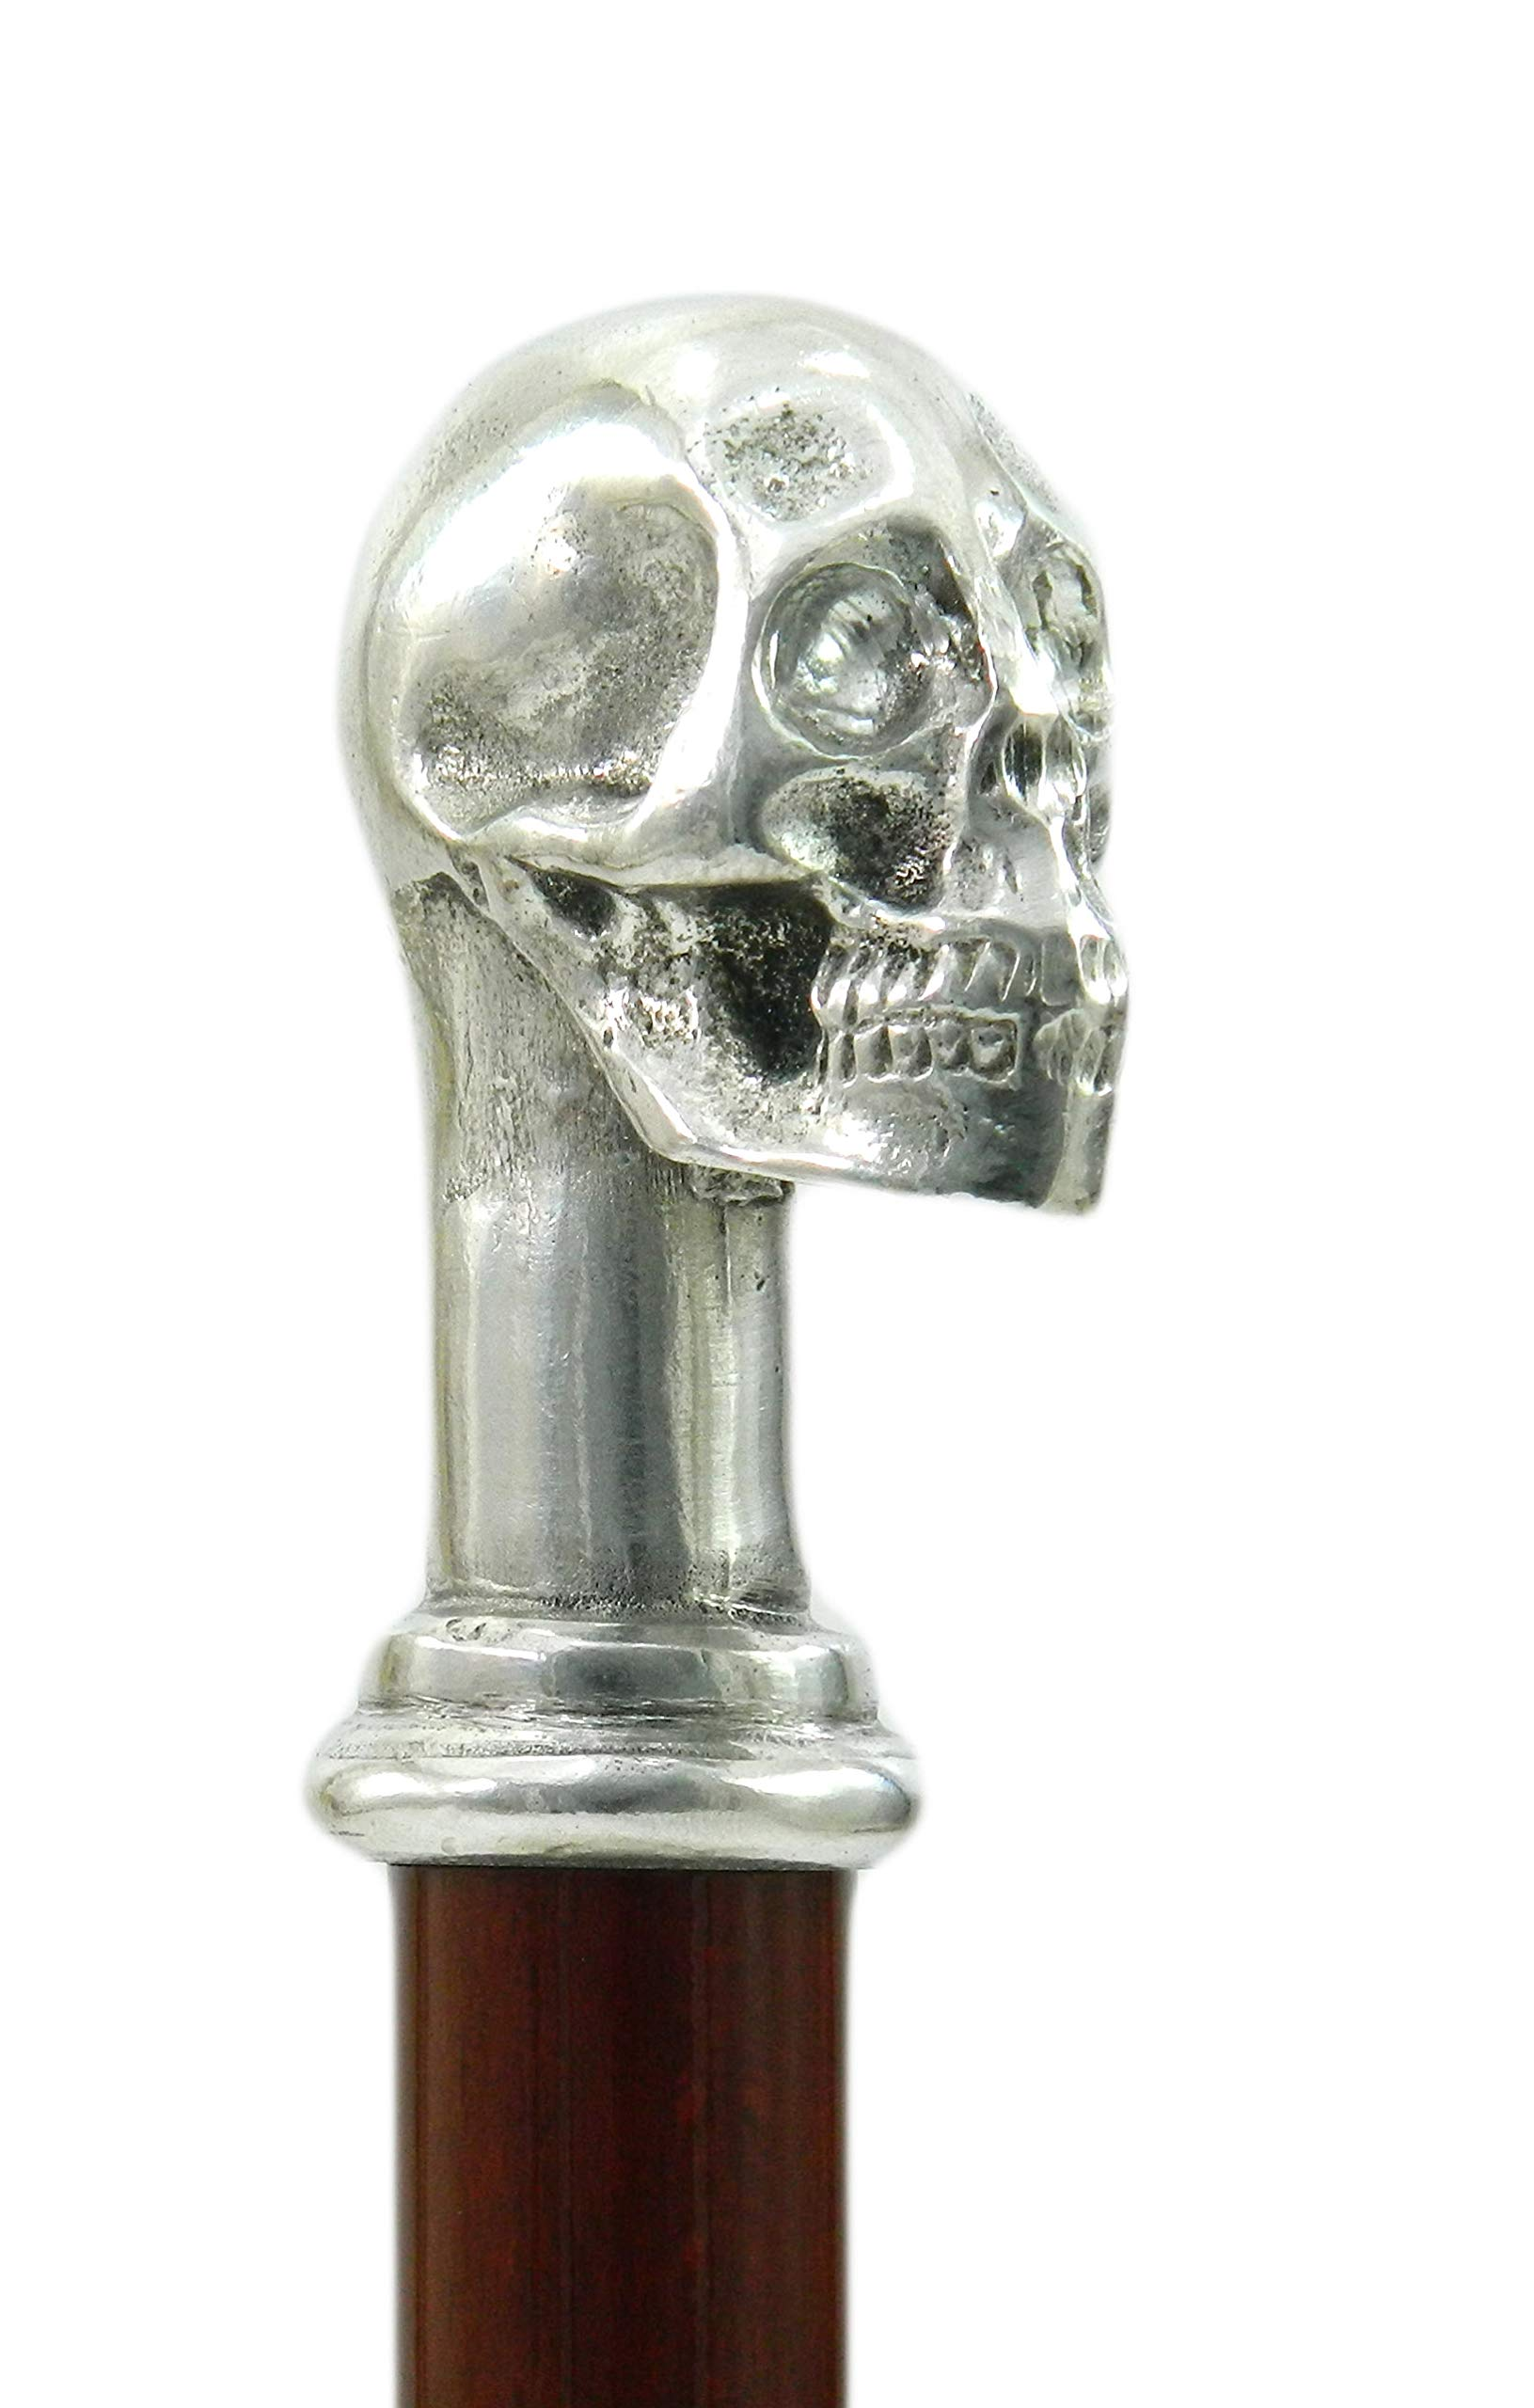 Walking Canes Skull Cane Metal Wooden Ornament for Women For Men Gift Cavagnini Vintage Old People Personalized Made in italy by Cavagnini - HandMade Italy